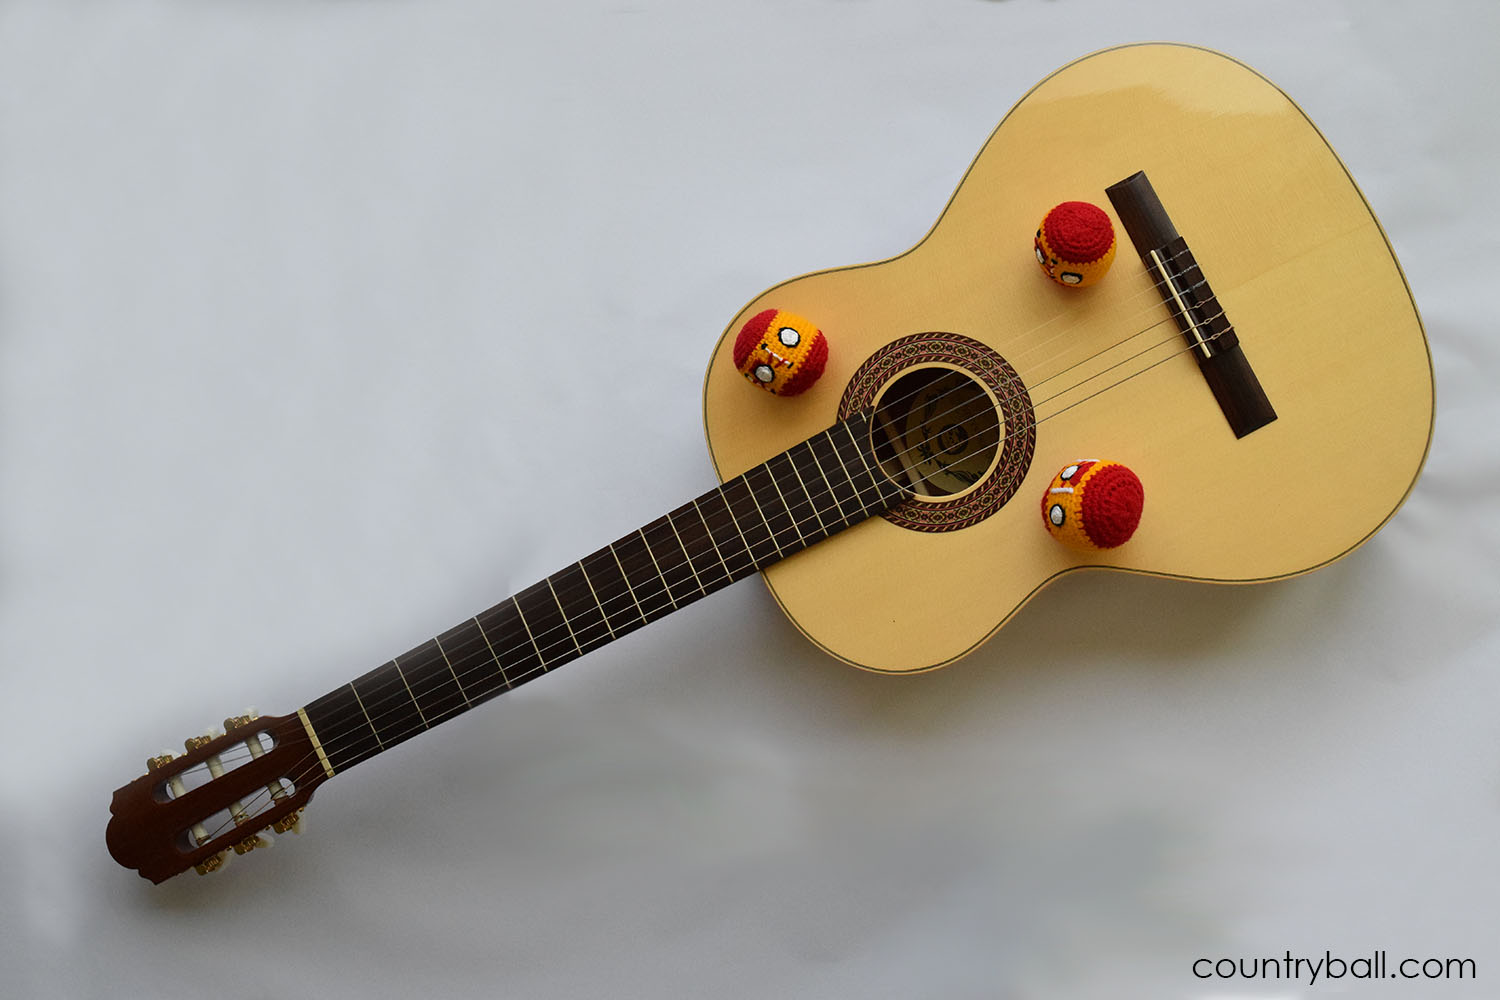 Spainball playing the Guitar